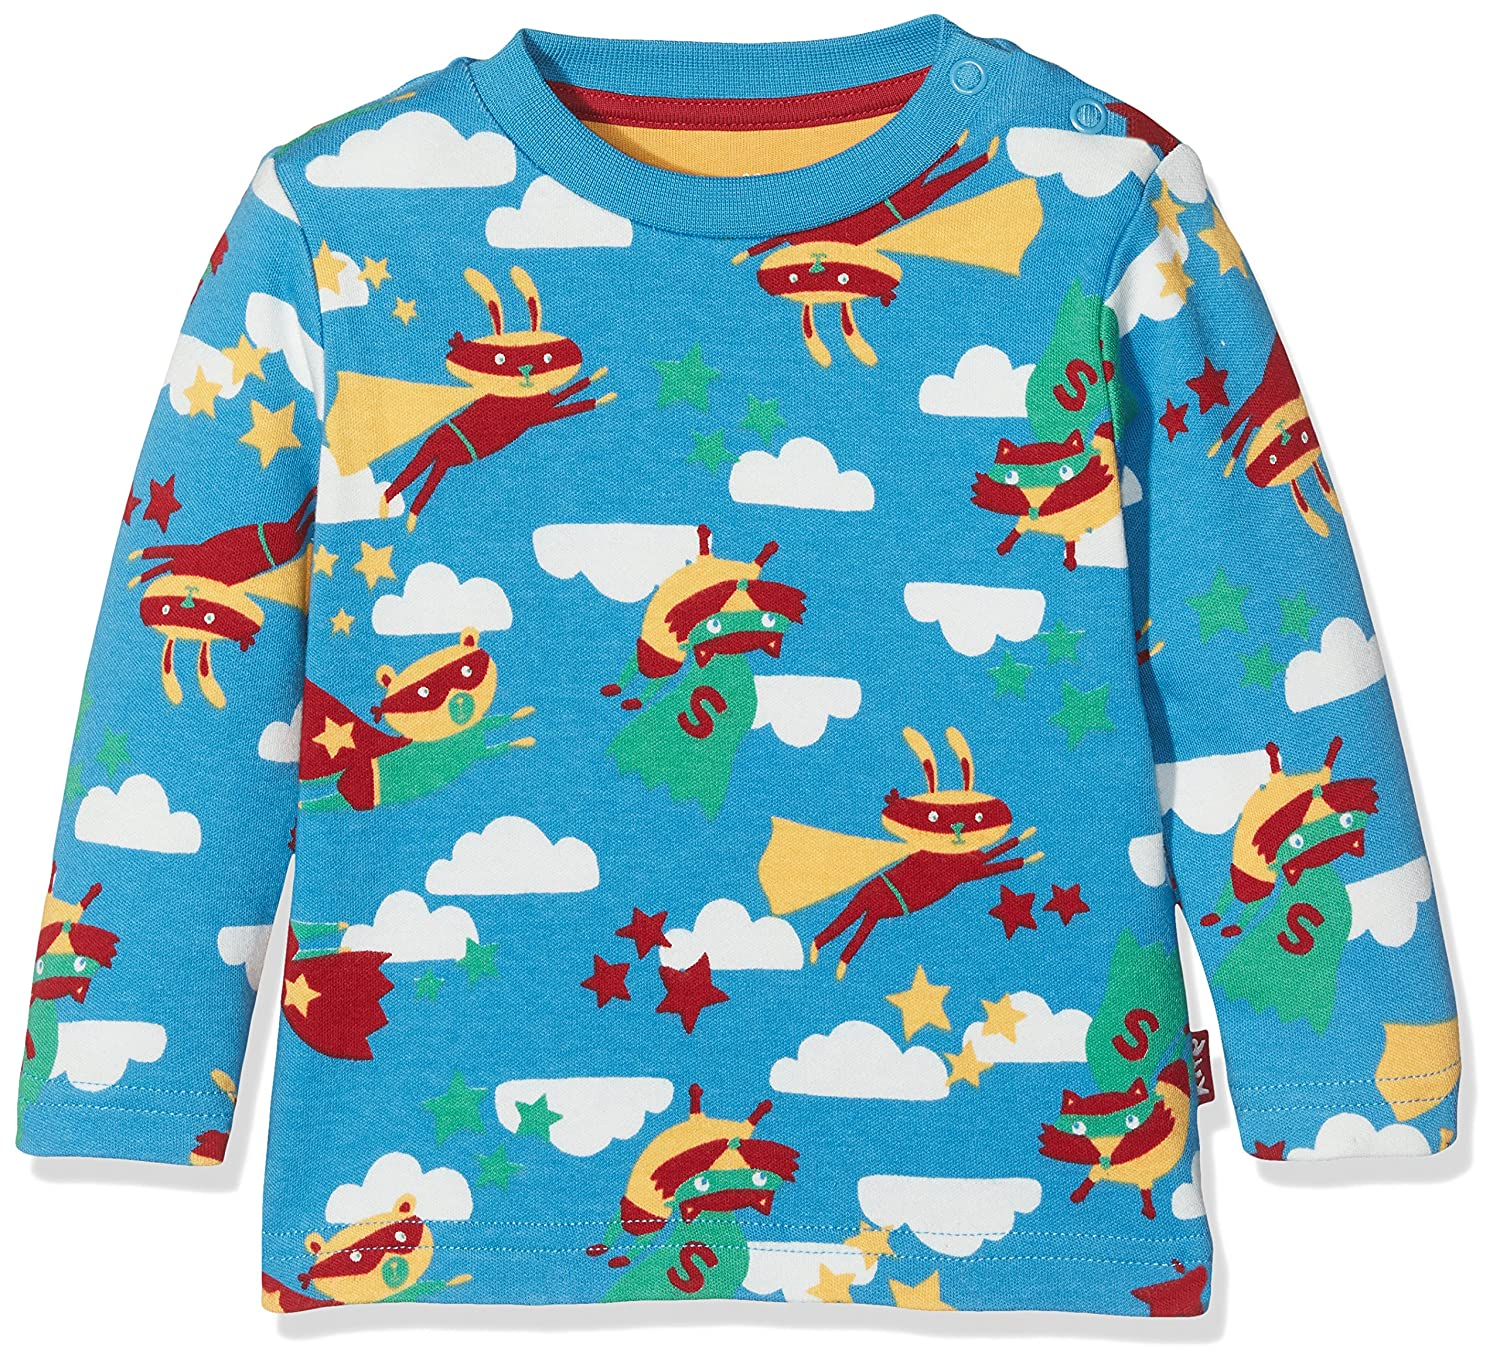 Kite Baby Boys' Superhero Longsleeve T-Shirt Blue (Bluejay) 12-18 Months BB908